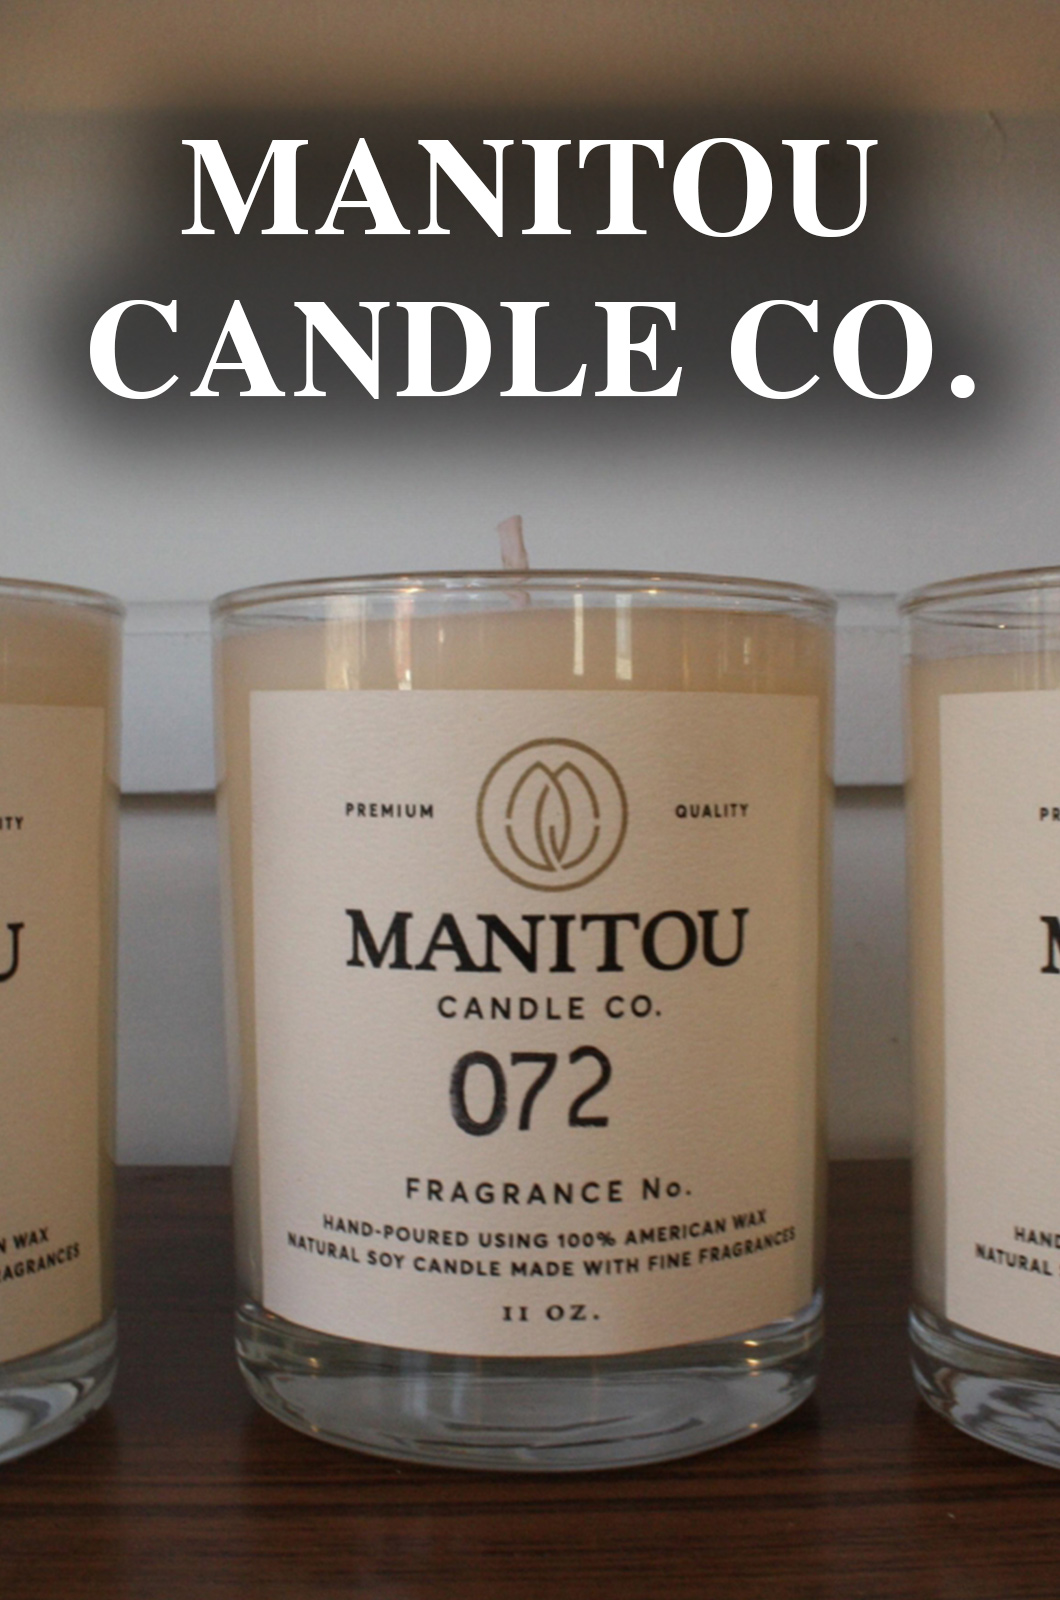 Manitou Candle Company at{&nbsp;}4015 Eastern Avenue, Cincinnati, OH (45226) / Image: Delaney French // Published: 11.26.19<p></p>